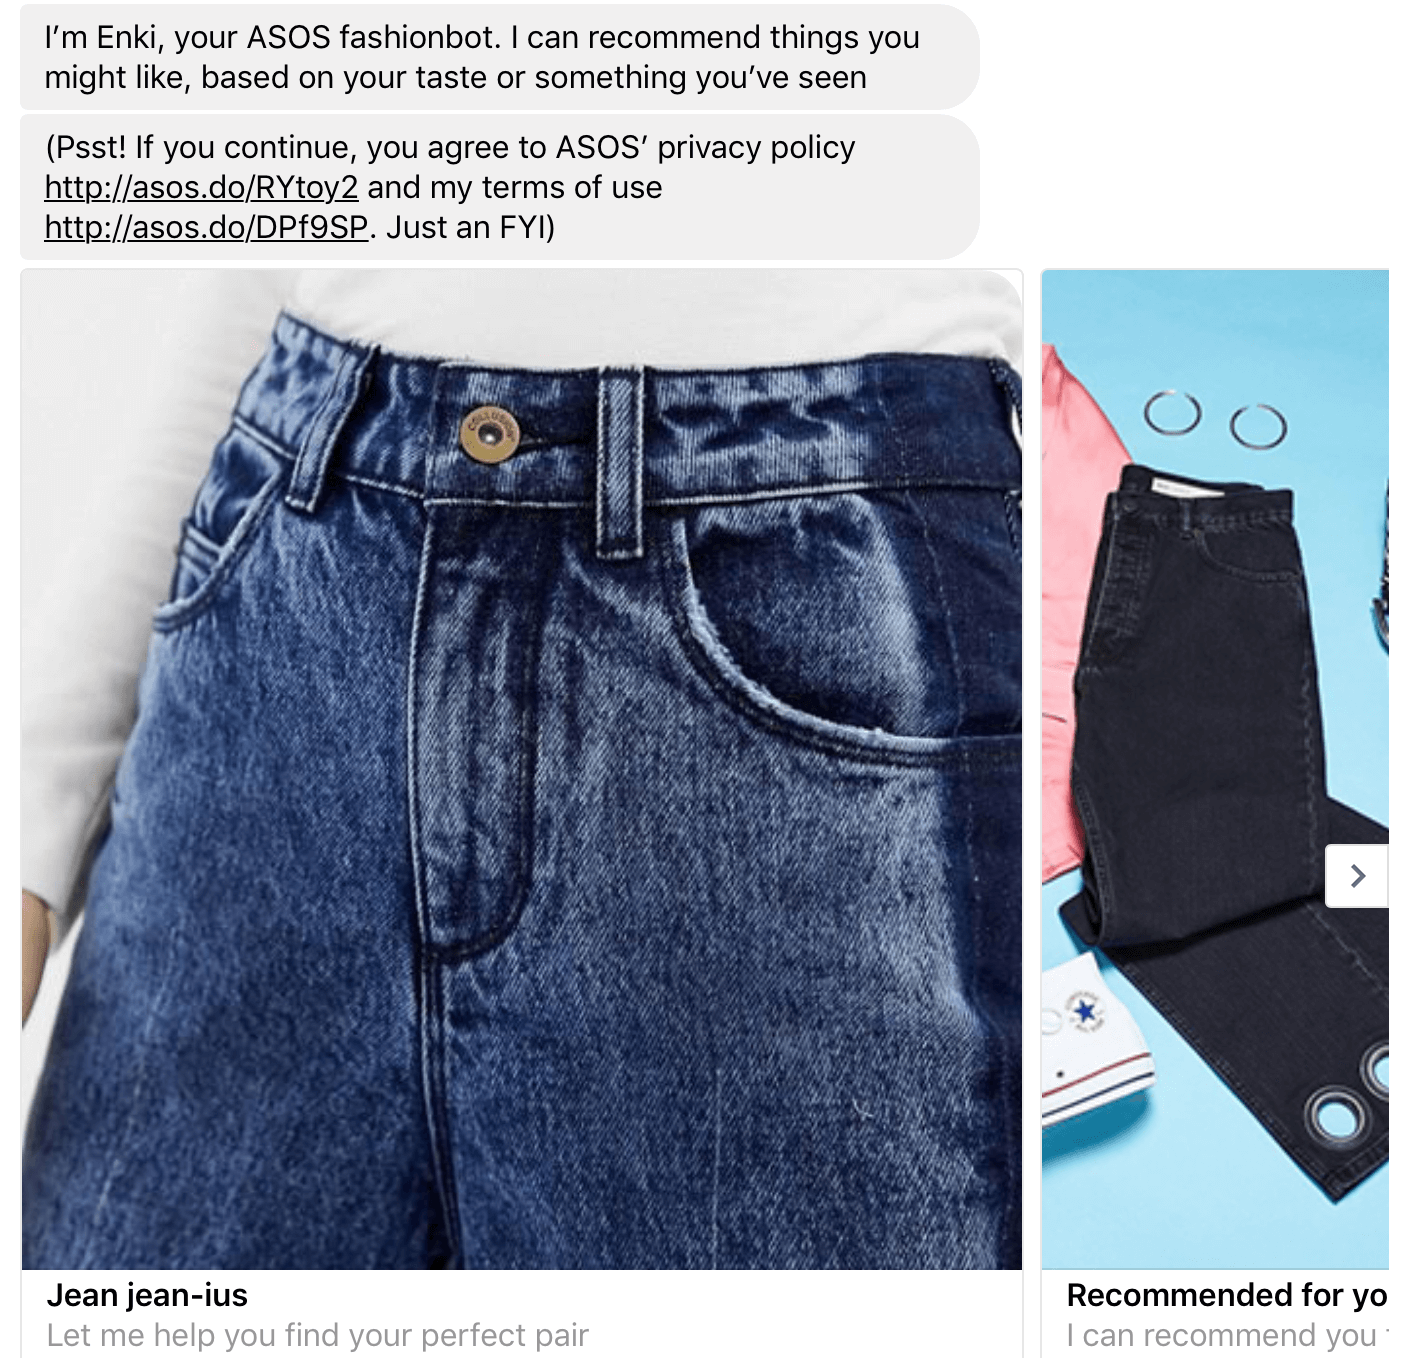 The ASOS chatbot.